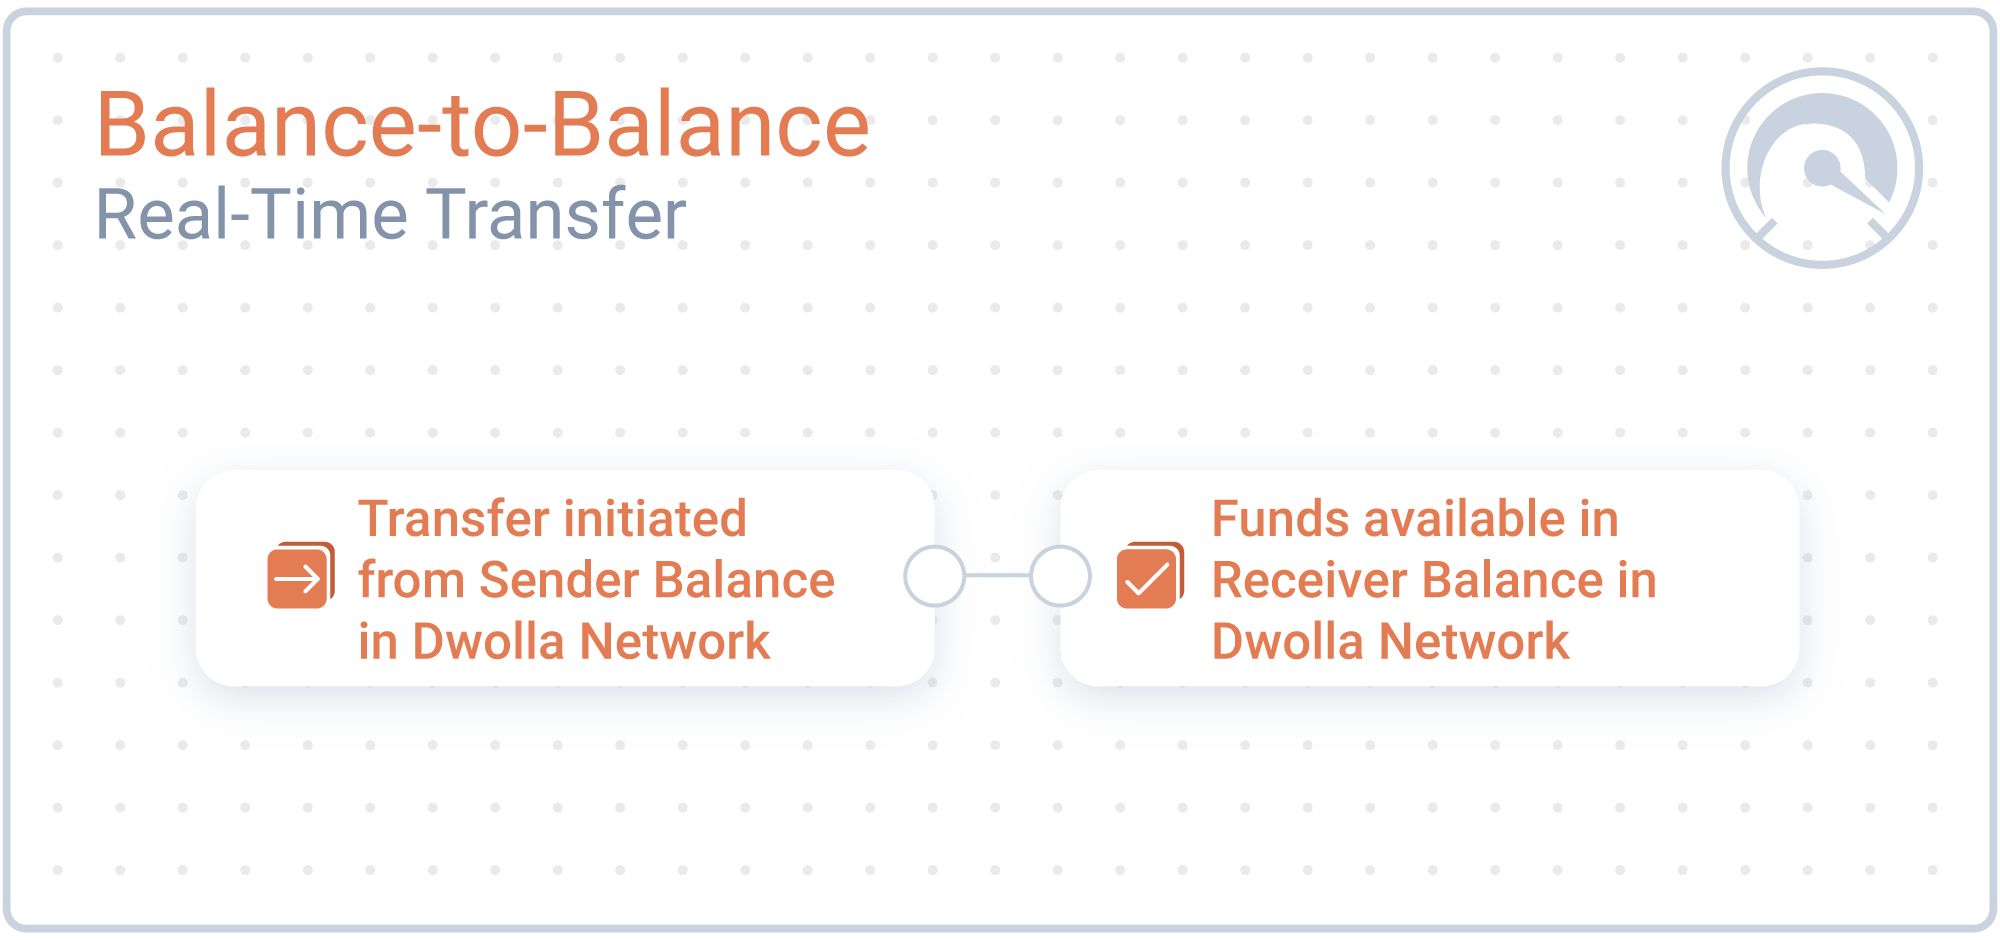 Balance-to-Balance Transfer Timeline Graphic